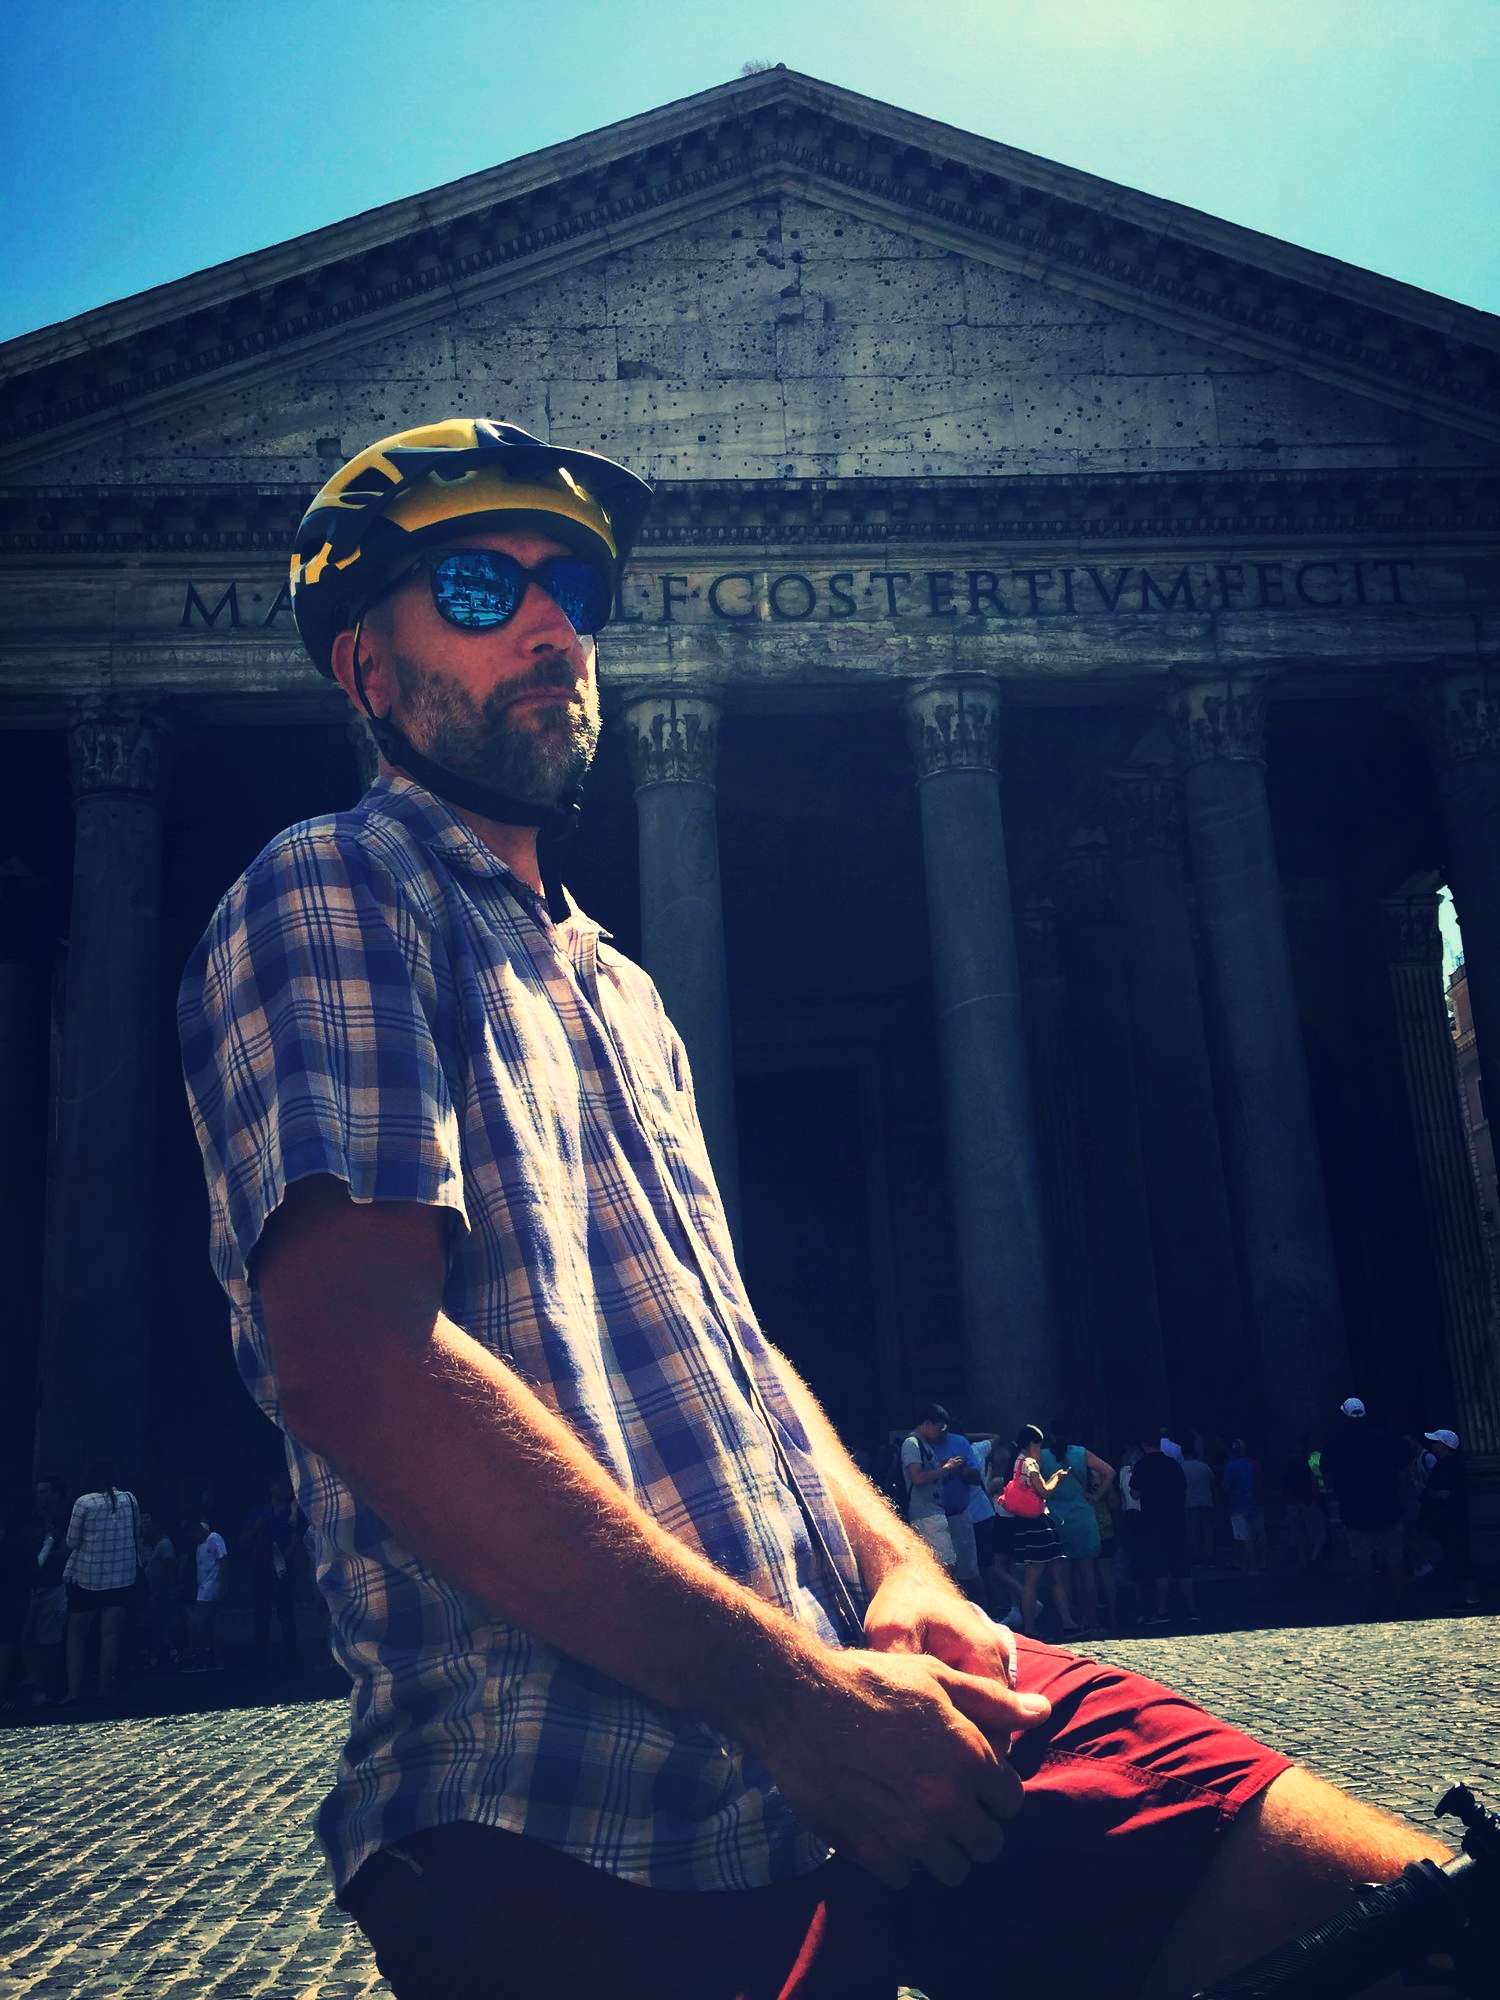 The Pantheon. Started being built in AD25. Old.